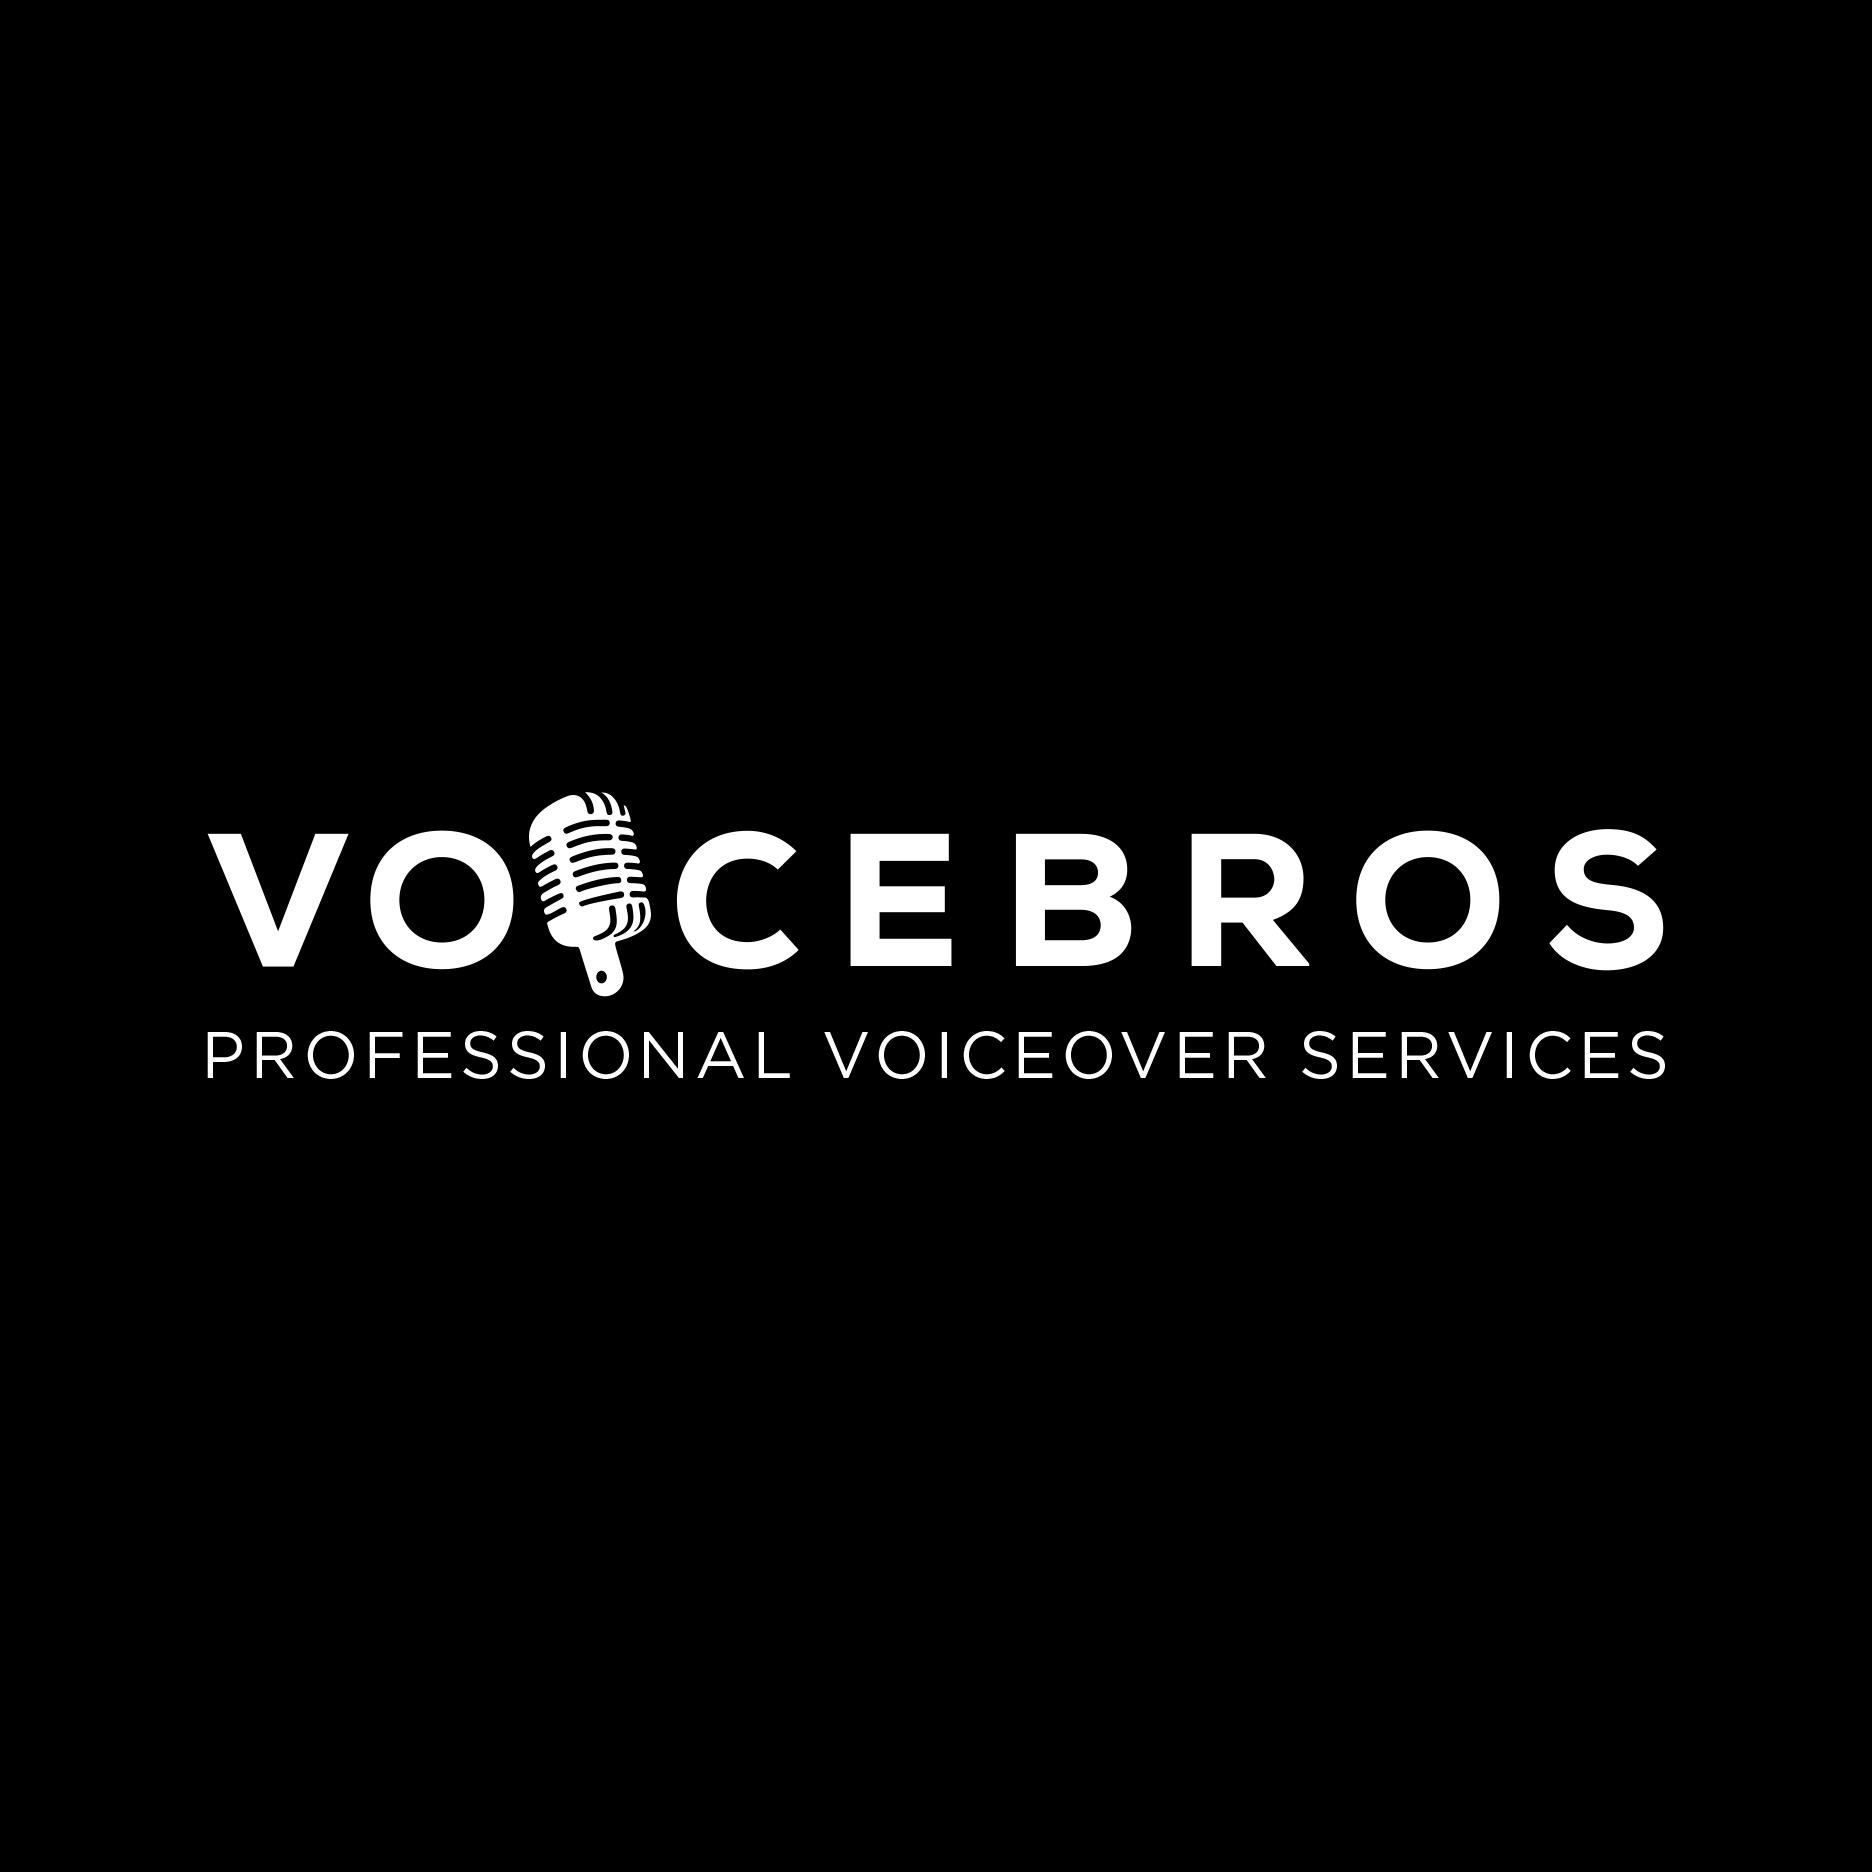 Tatiana Galbusera is a voice over actor